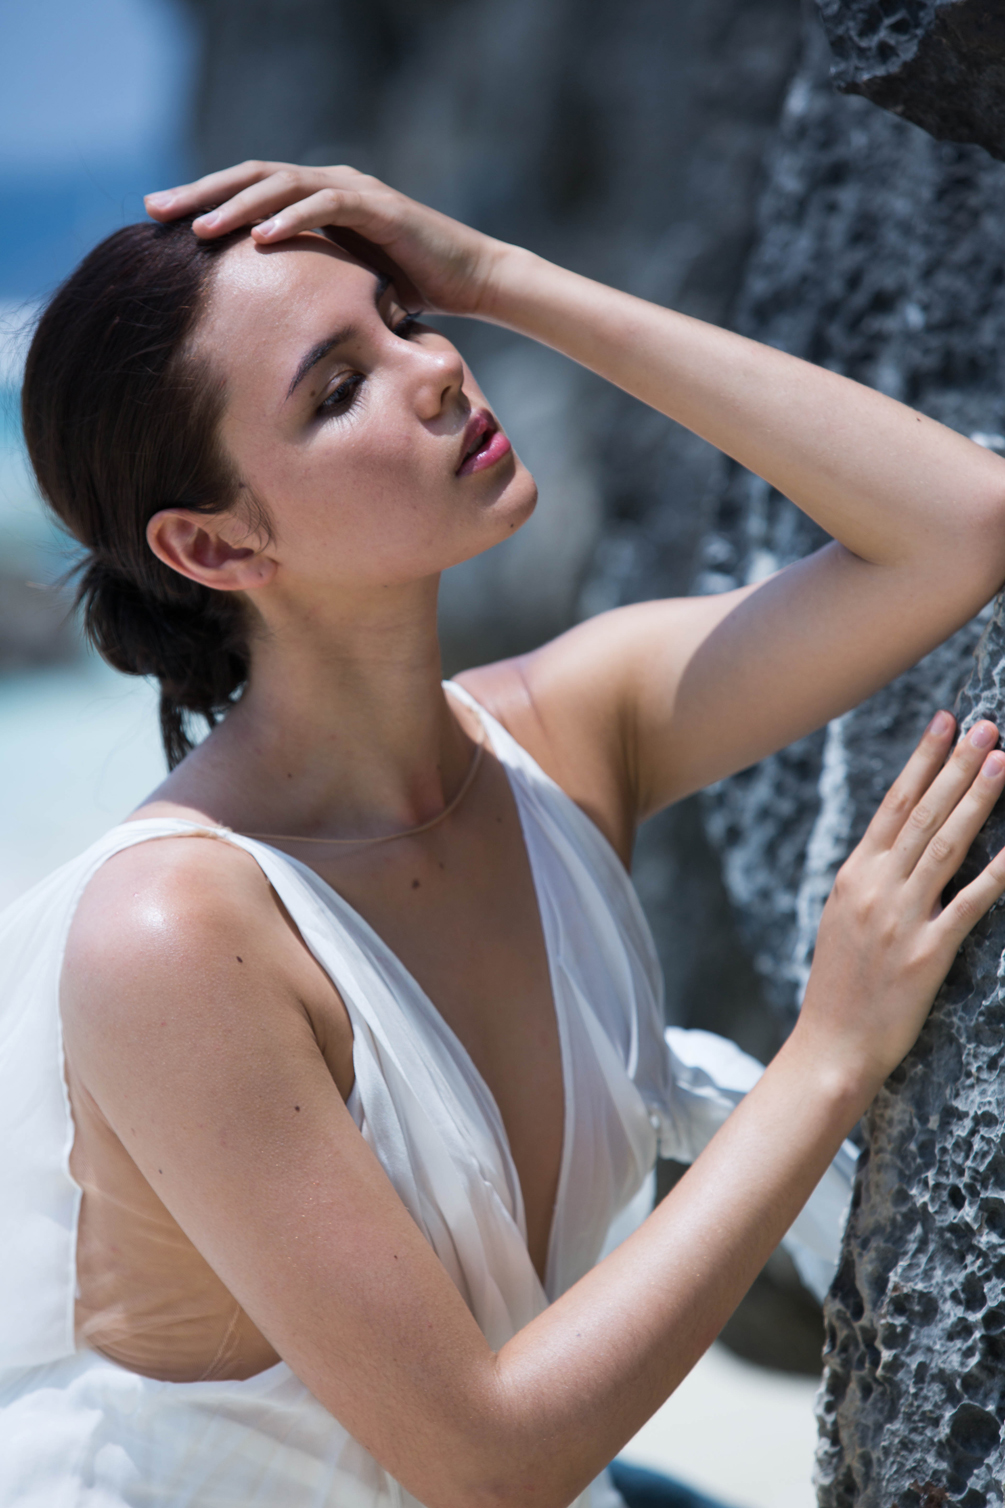 Cerulean, Editorial in Coron, Palawan Philippines Catriona Gray | cat-elle.com